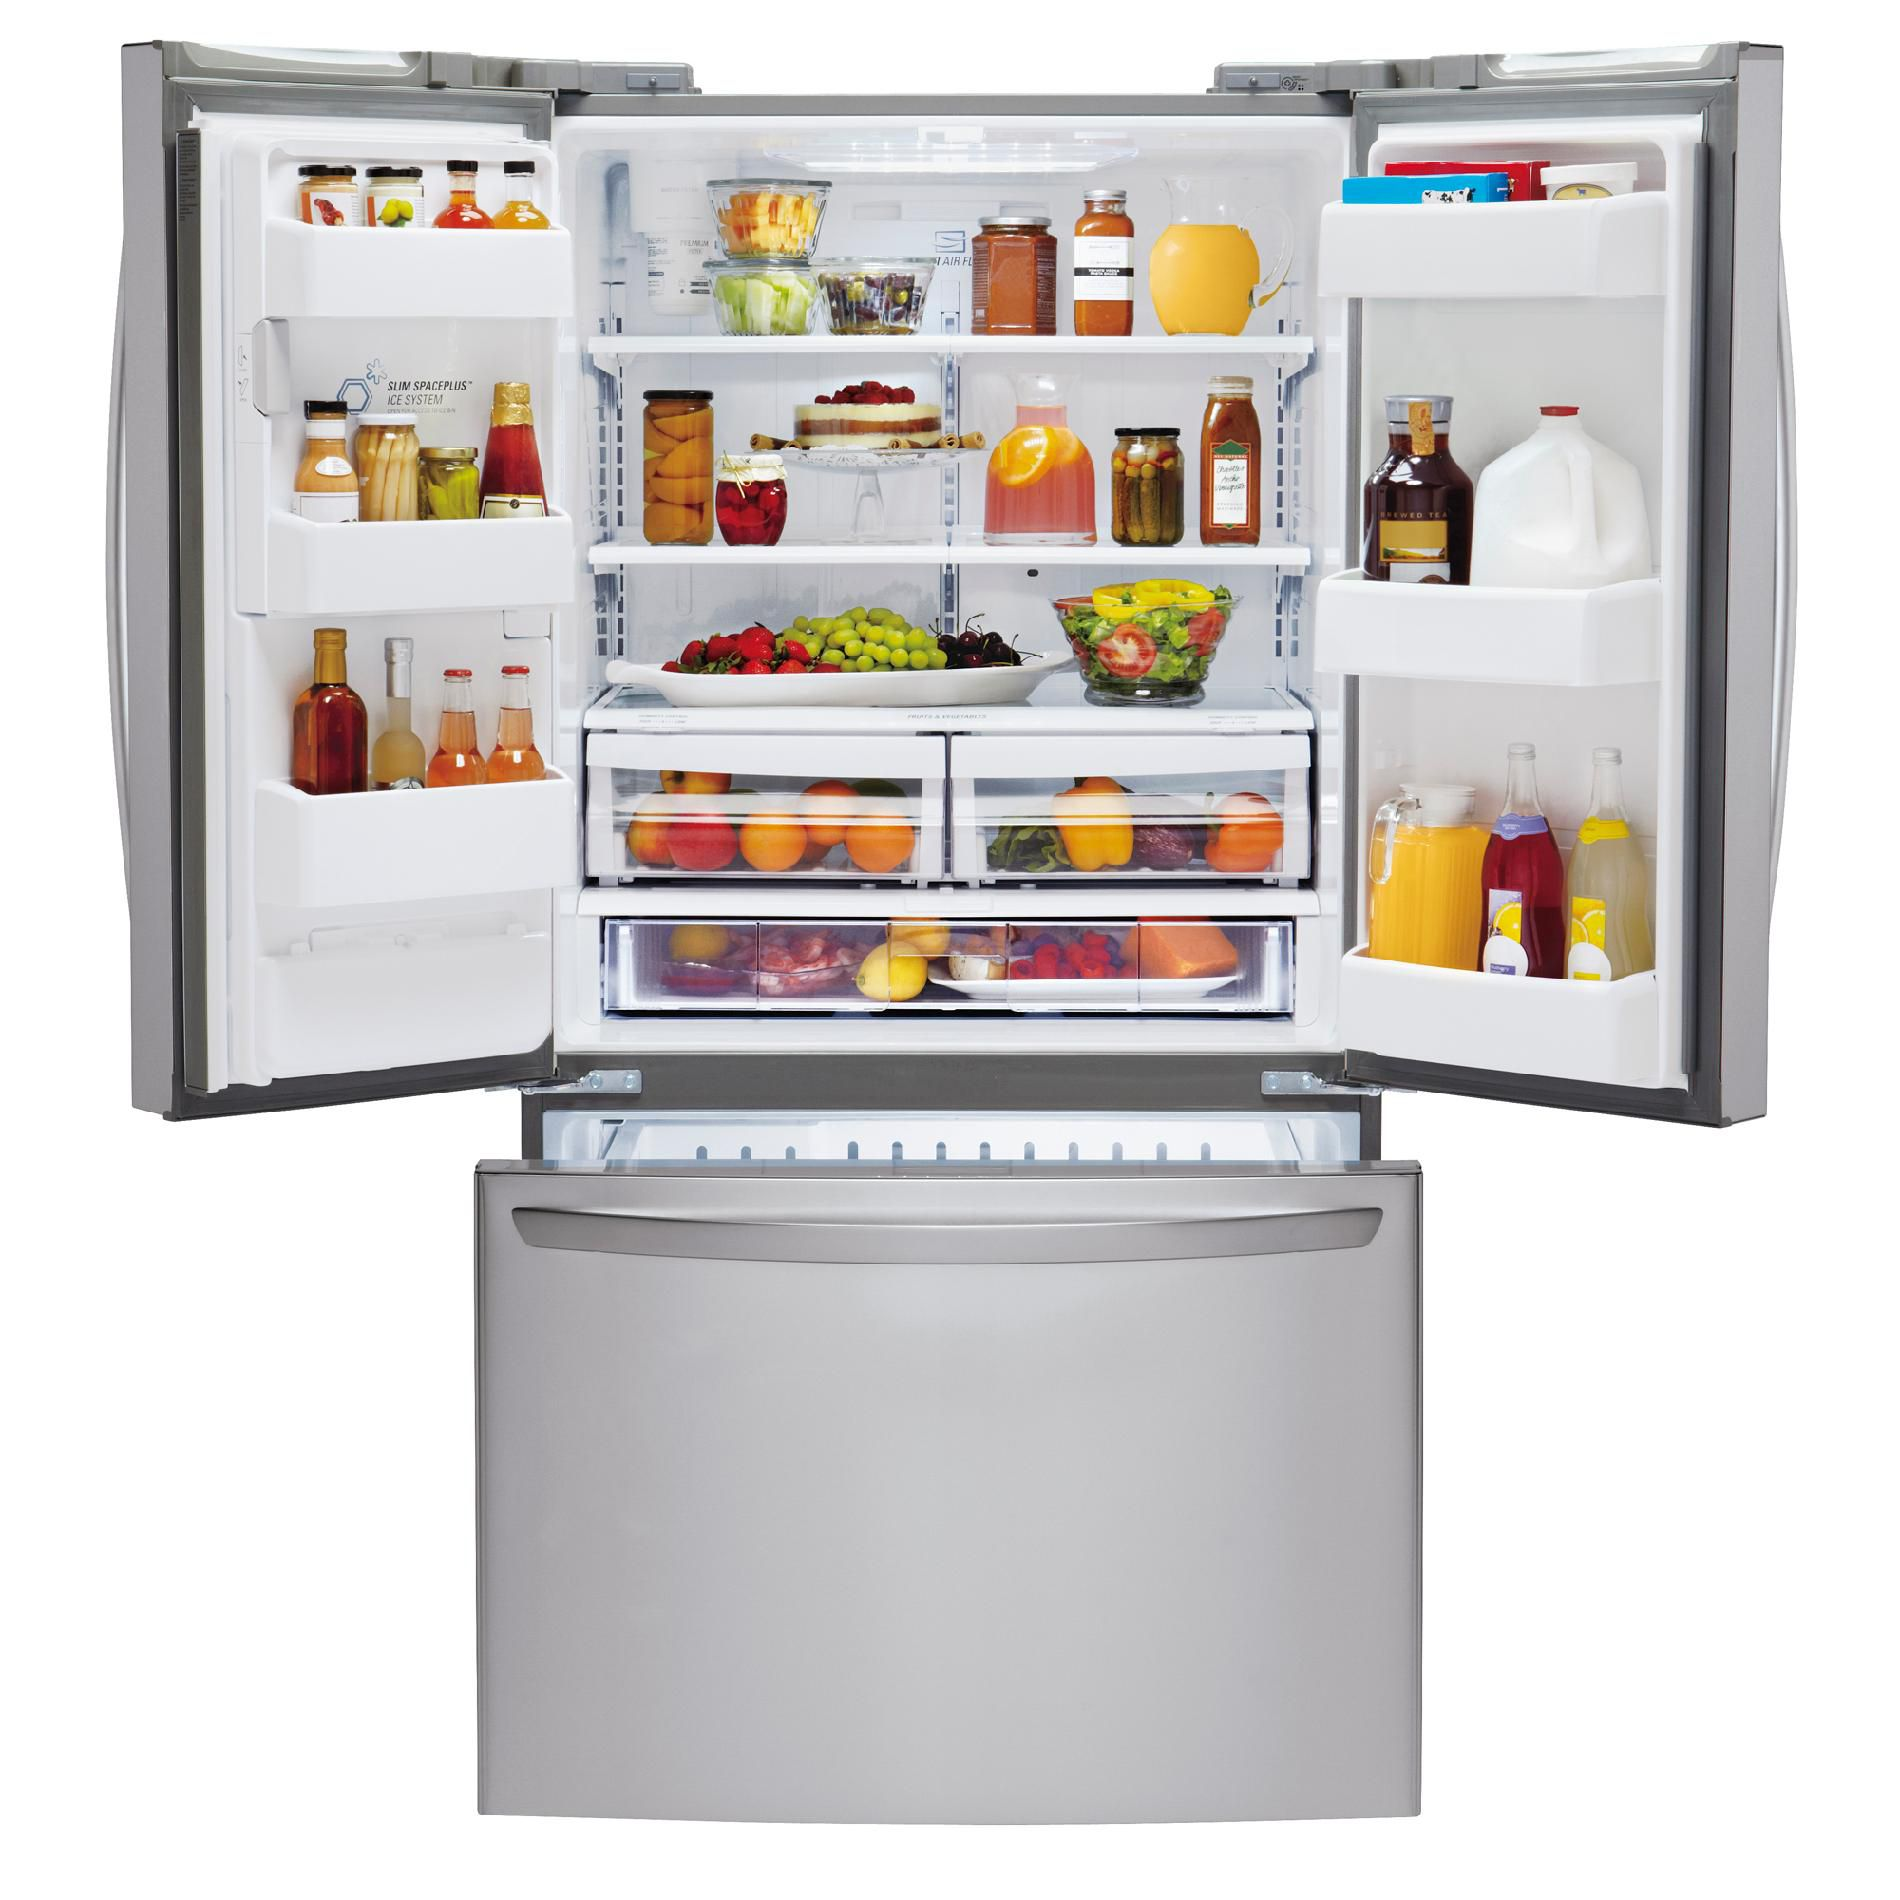 LG LFX25974ST 24.7 cu. ft. French Door Bottom-Freezer Refrigerator